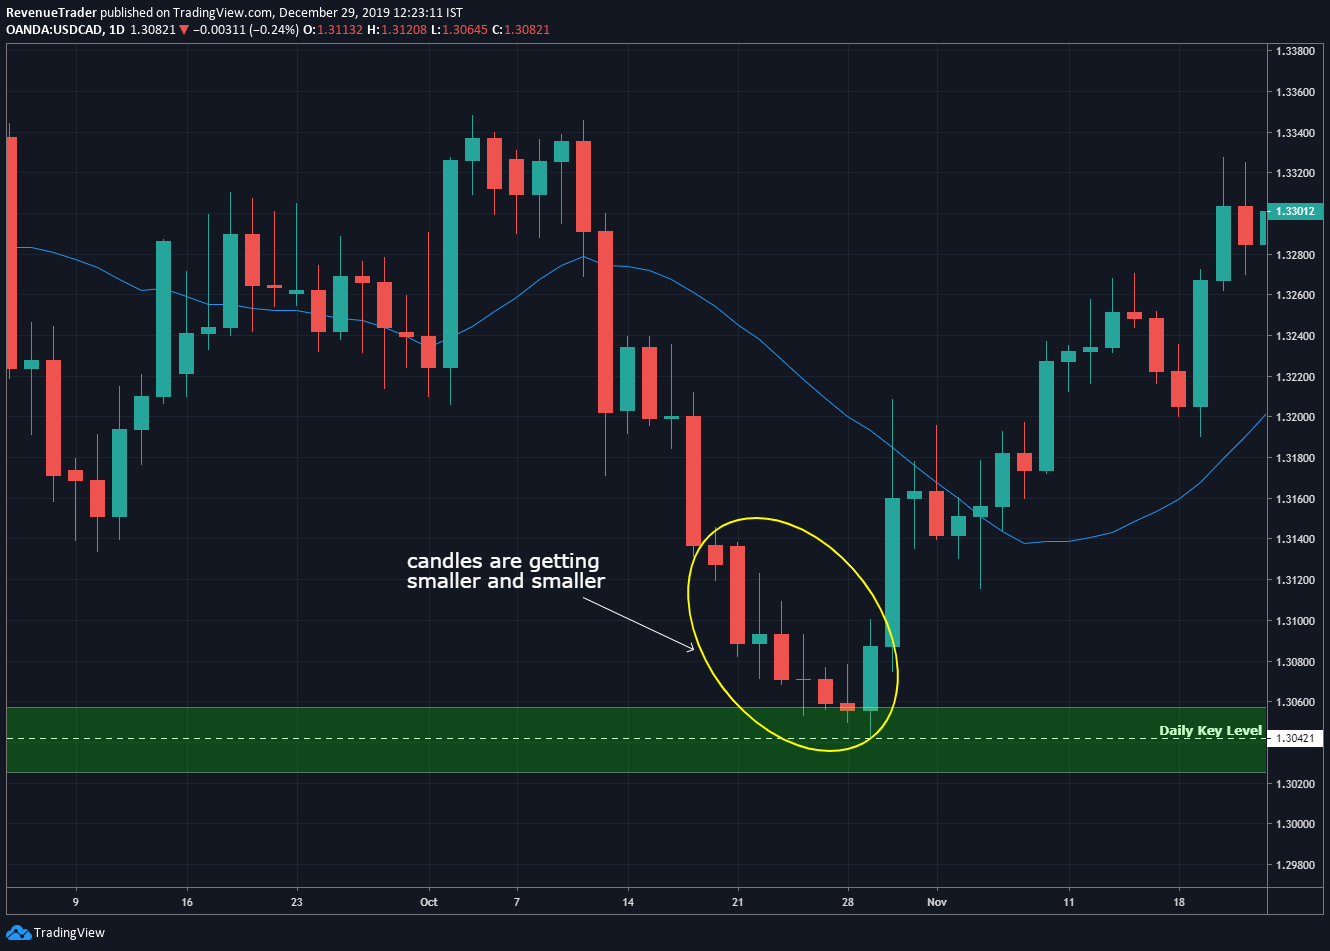 candlestick pattern are getting smaller and smaller when it approaching to the support level